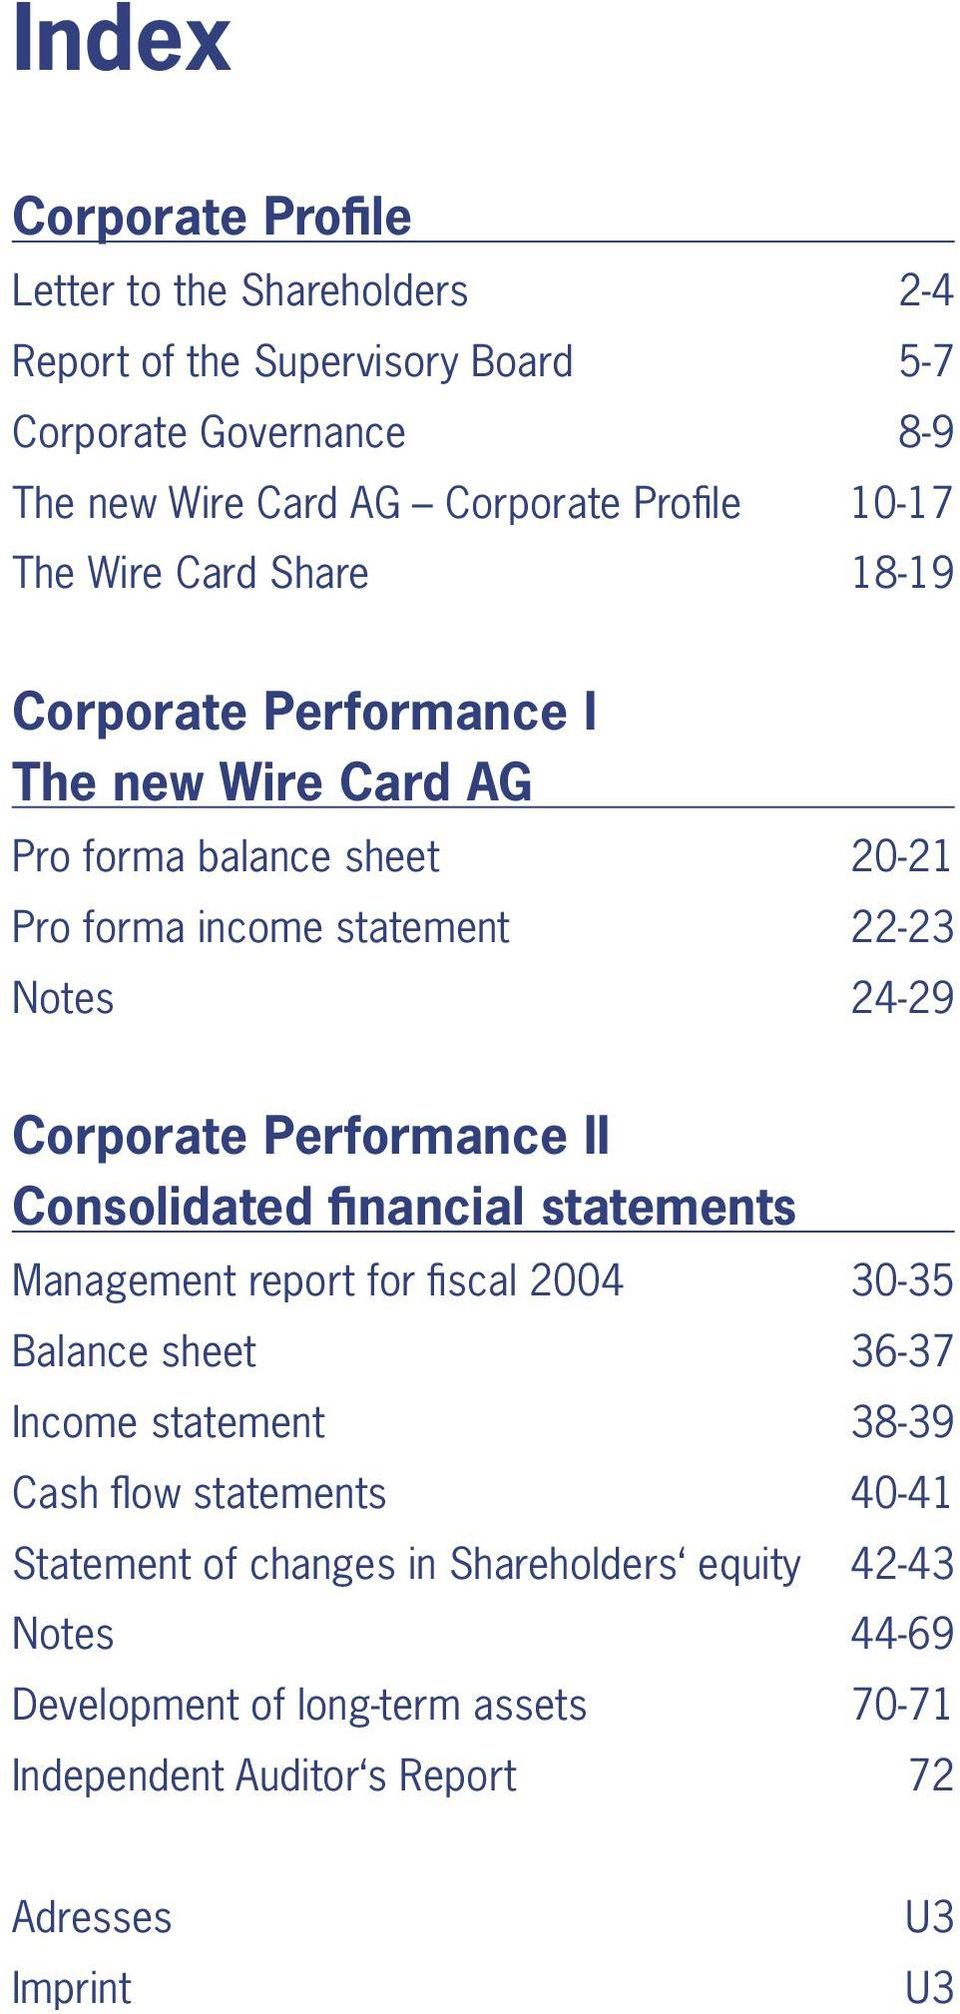 Corporate Performance II Consolidated financial statements Management report for fiscal 2004 30-35 Balance sheet 36-37 Income statement 38-39 Cash flow